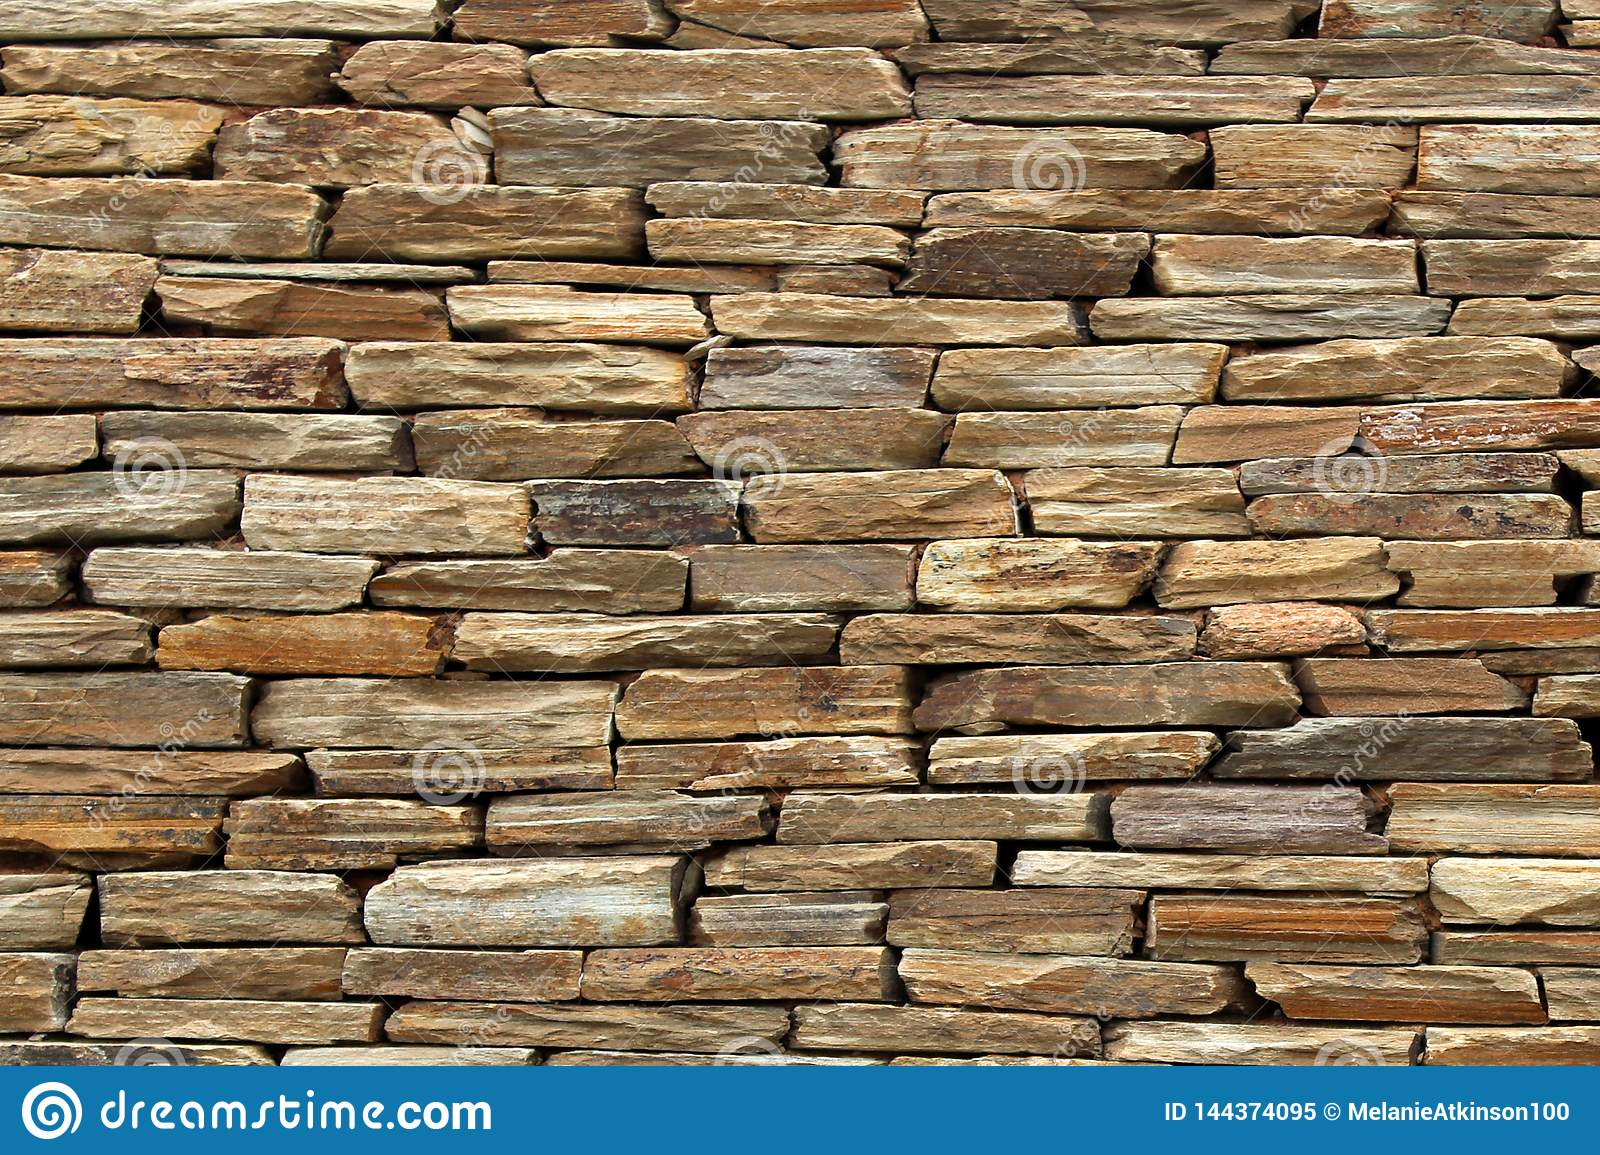 Rough textured wall created using flat rocks